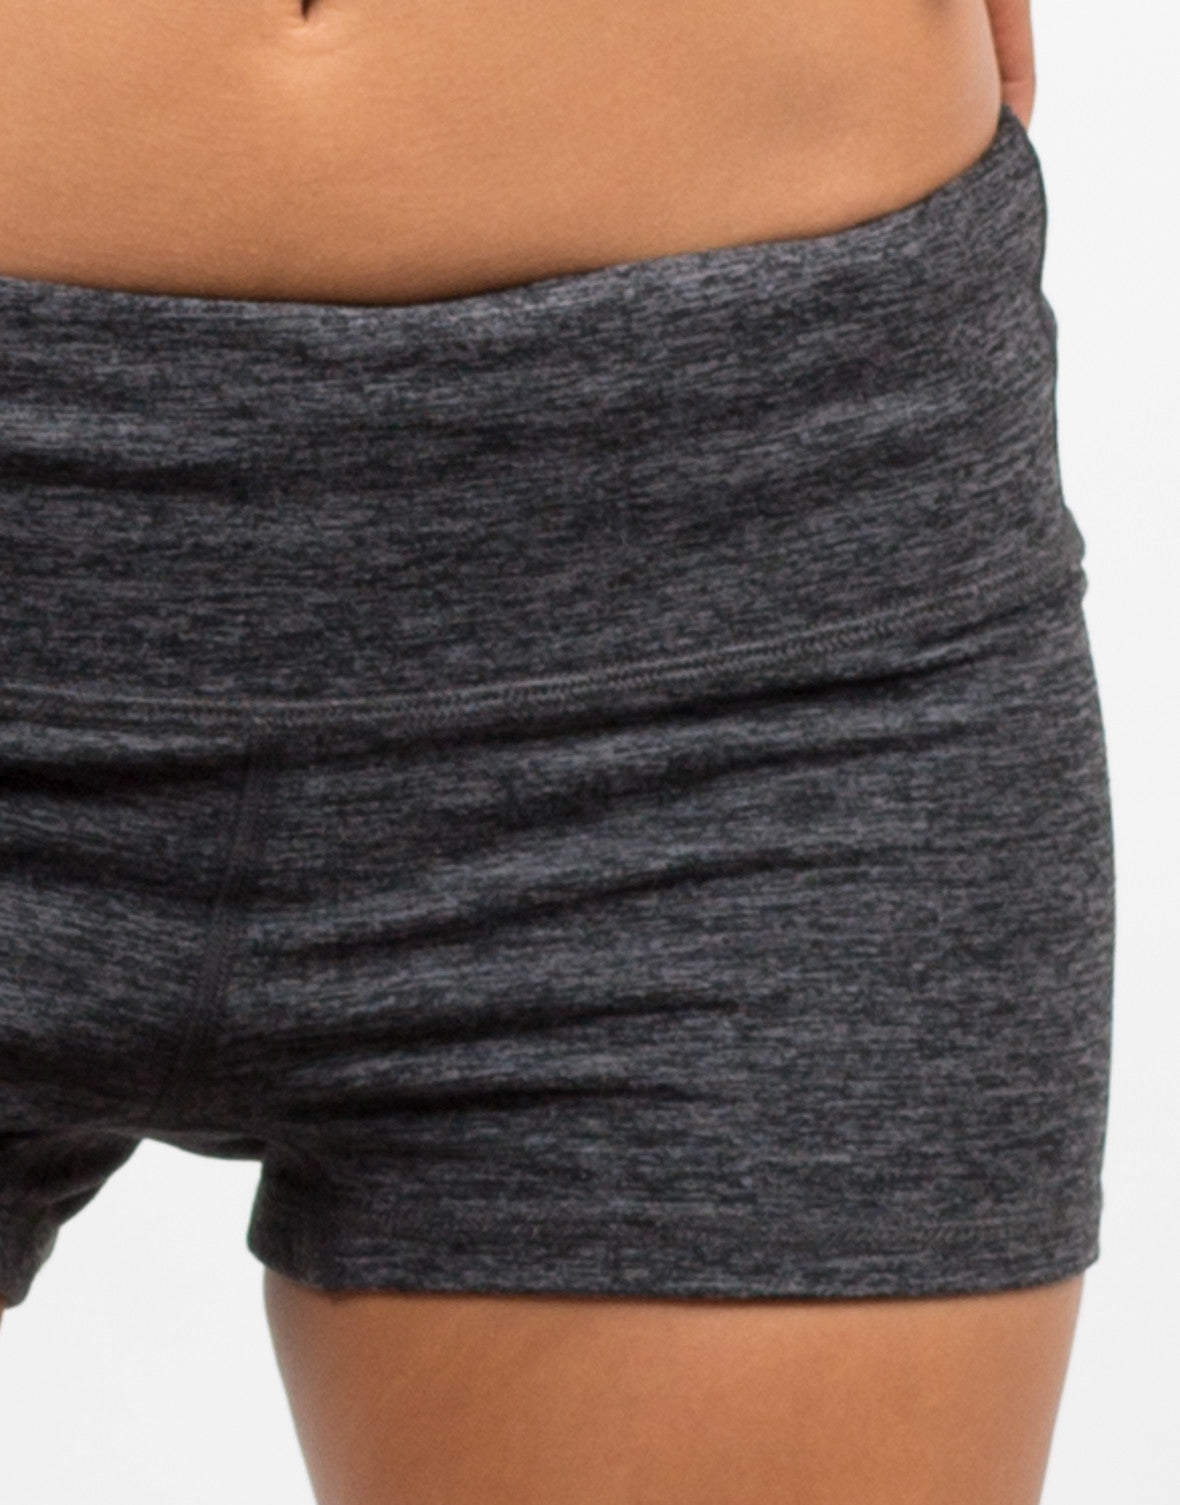 Detail of Basic Runner Shorts